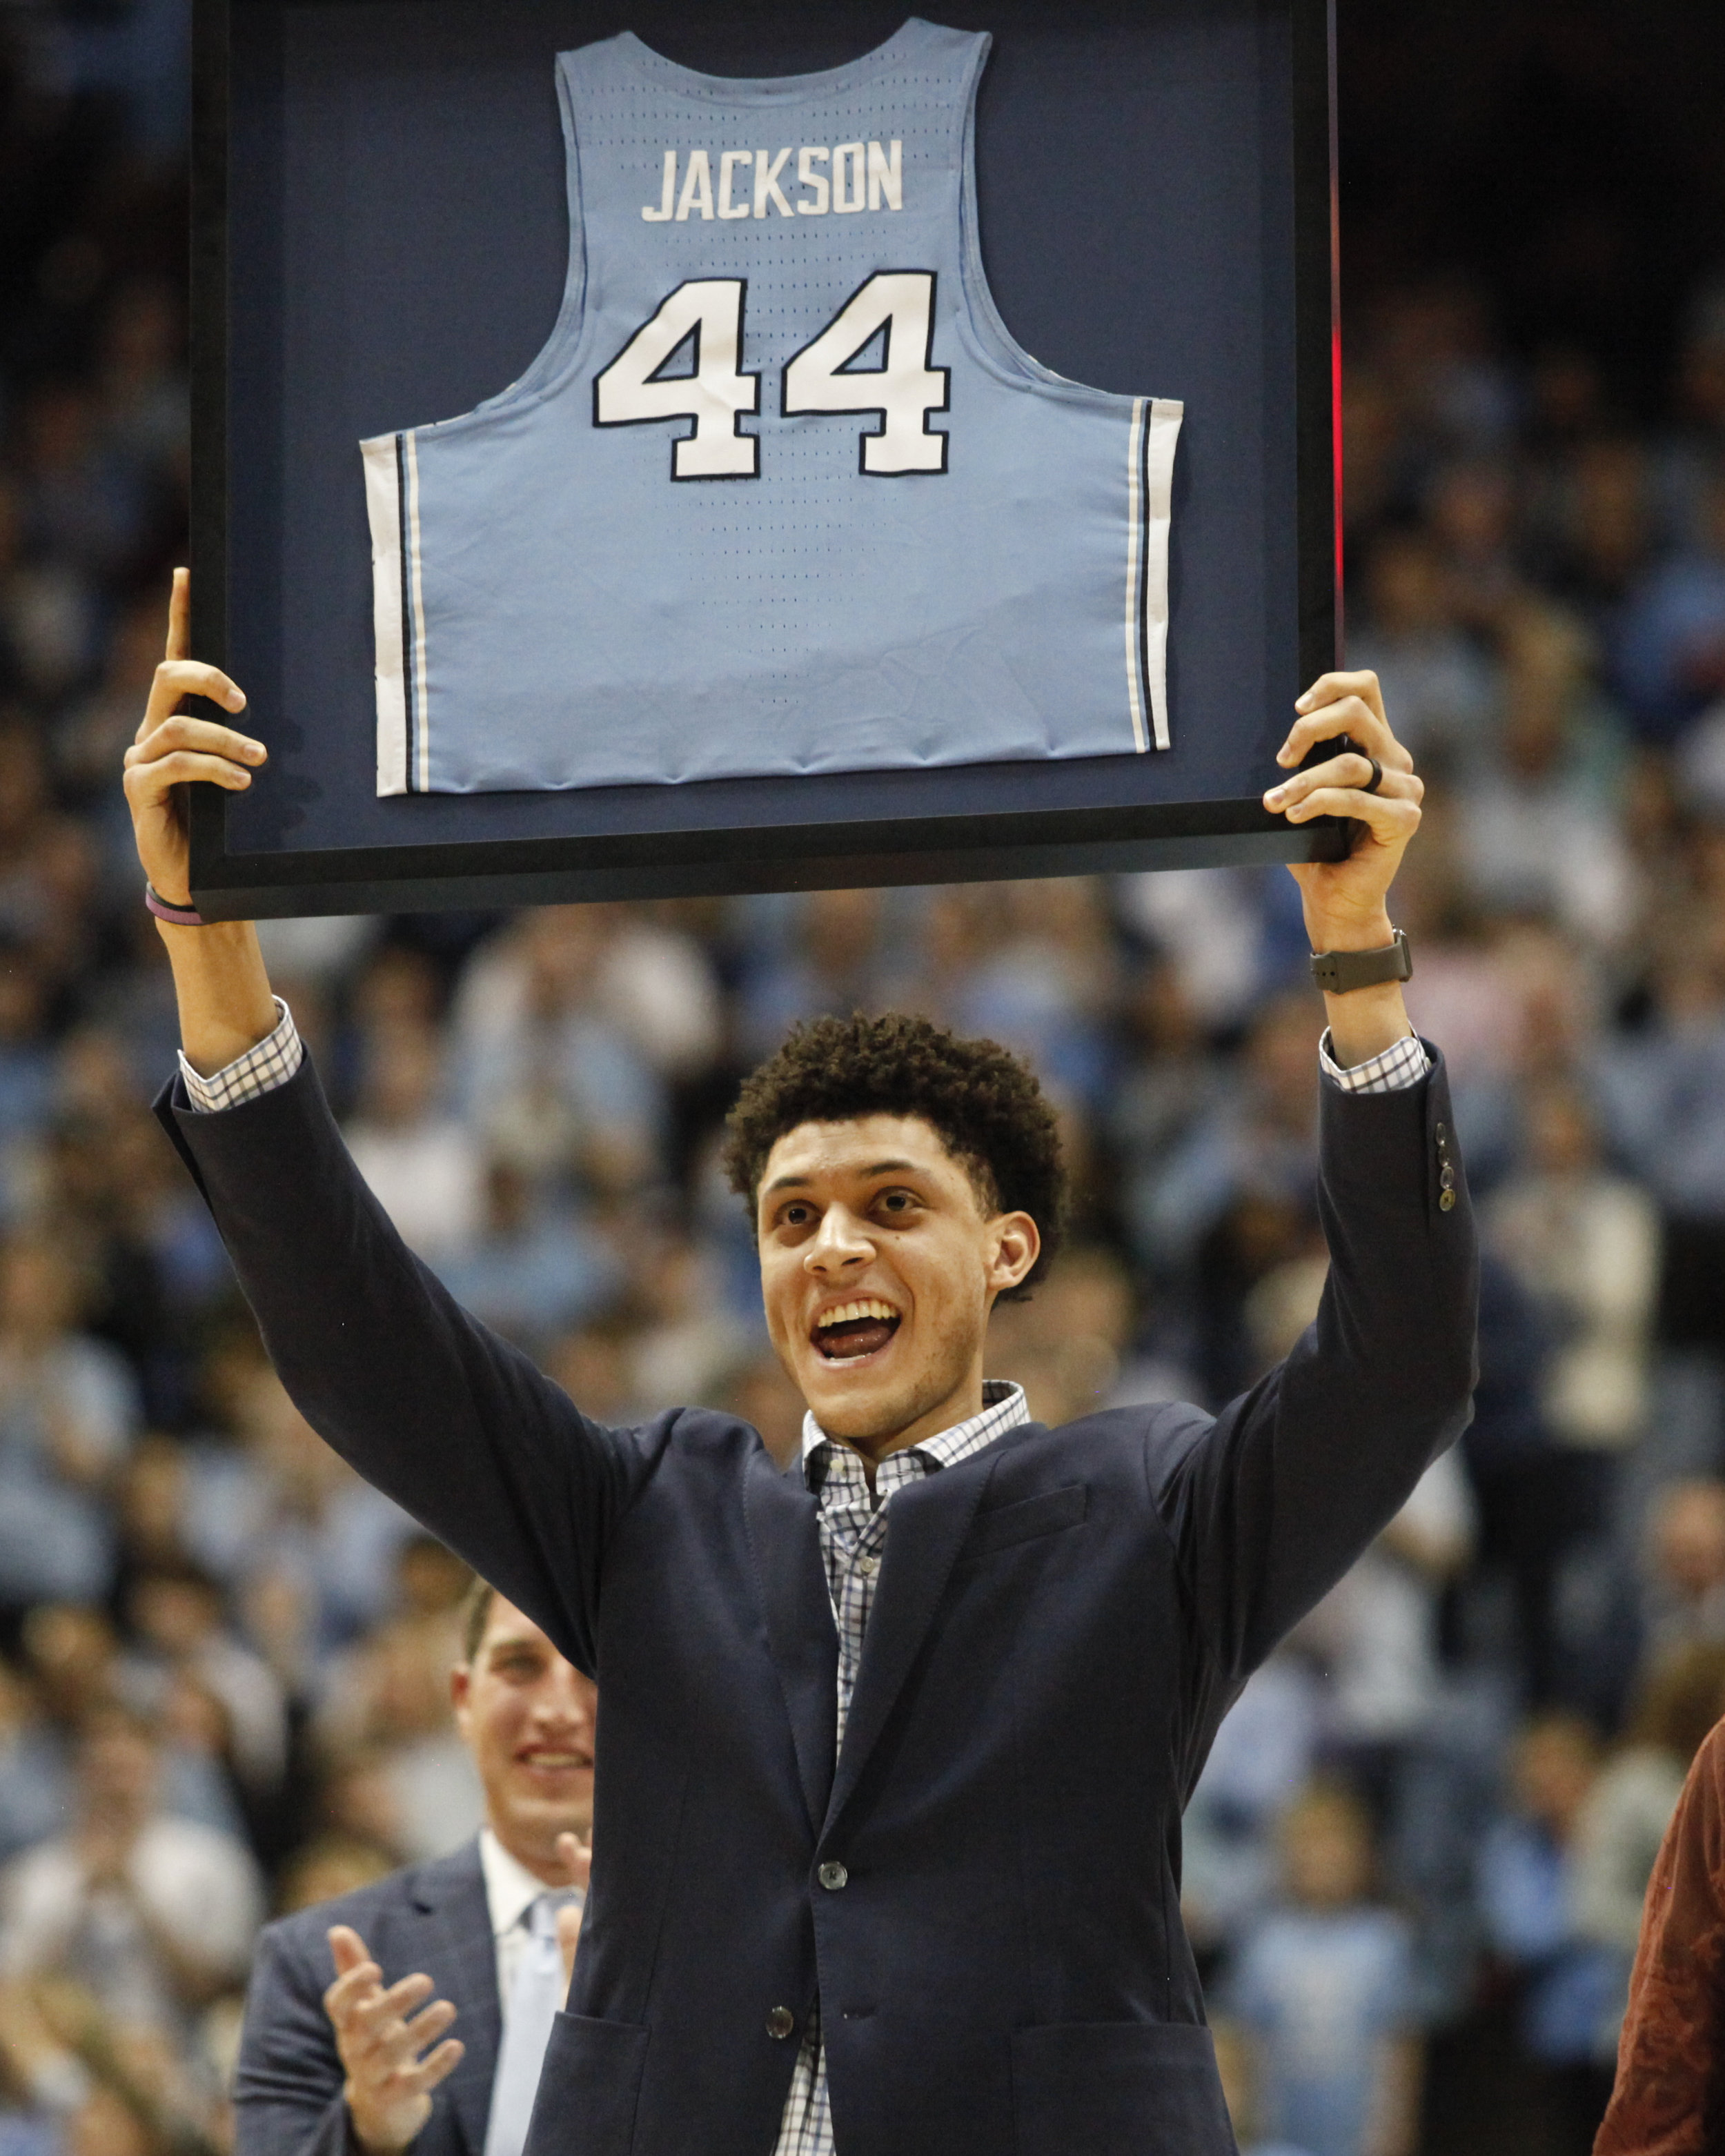 Justin Jackson, now with the Sacramento Kings, comes back to the Dean Smith Center to watch his jersey retired in the rafters.